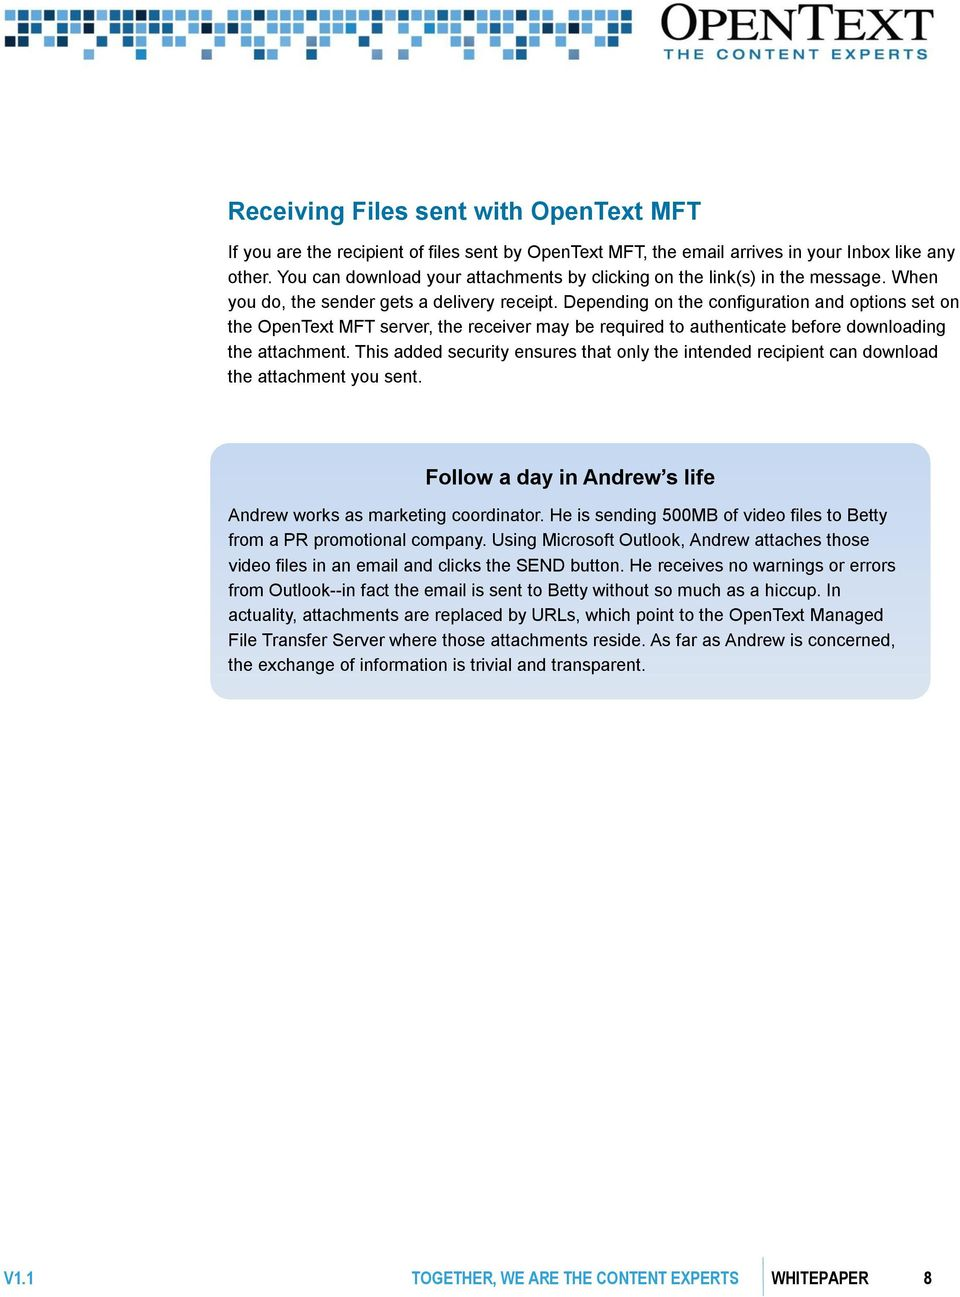 Depending on the configuration and options set on the OpenText MFT server, the receiver may be required to authenticate before downloading the attachment.